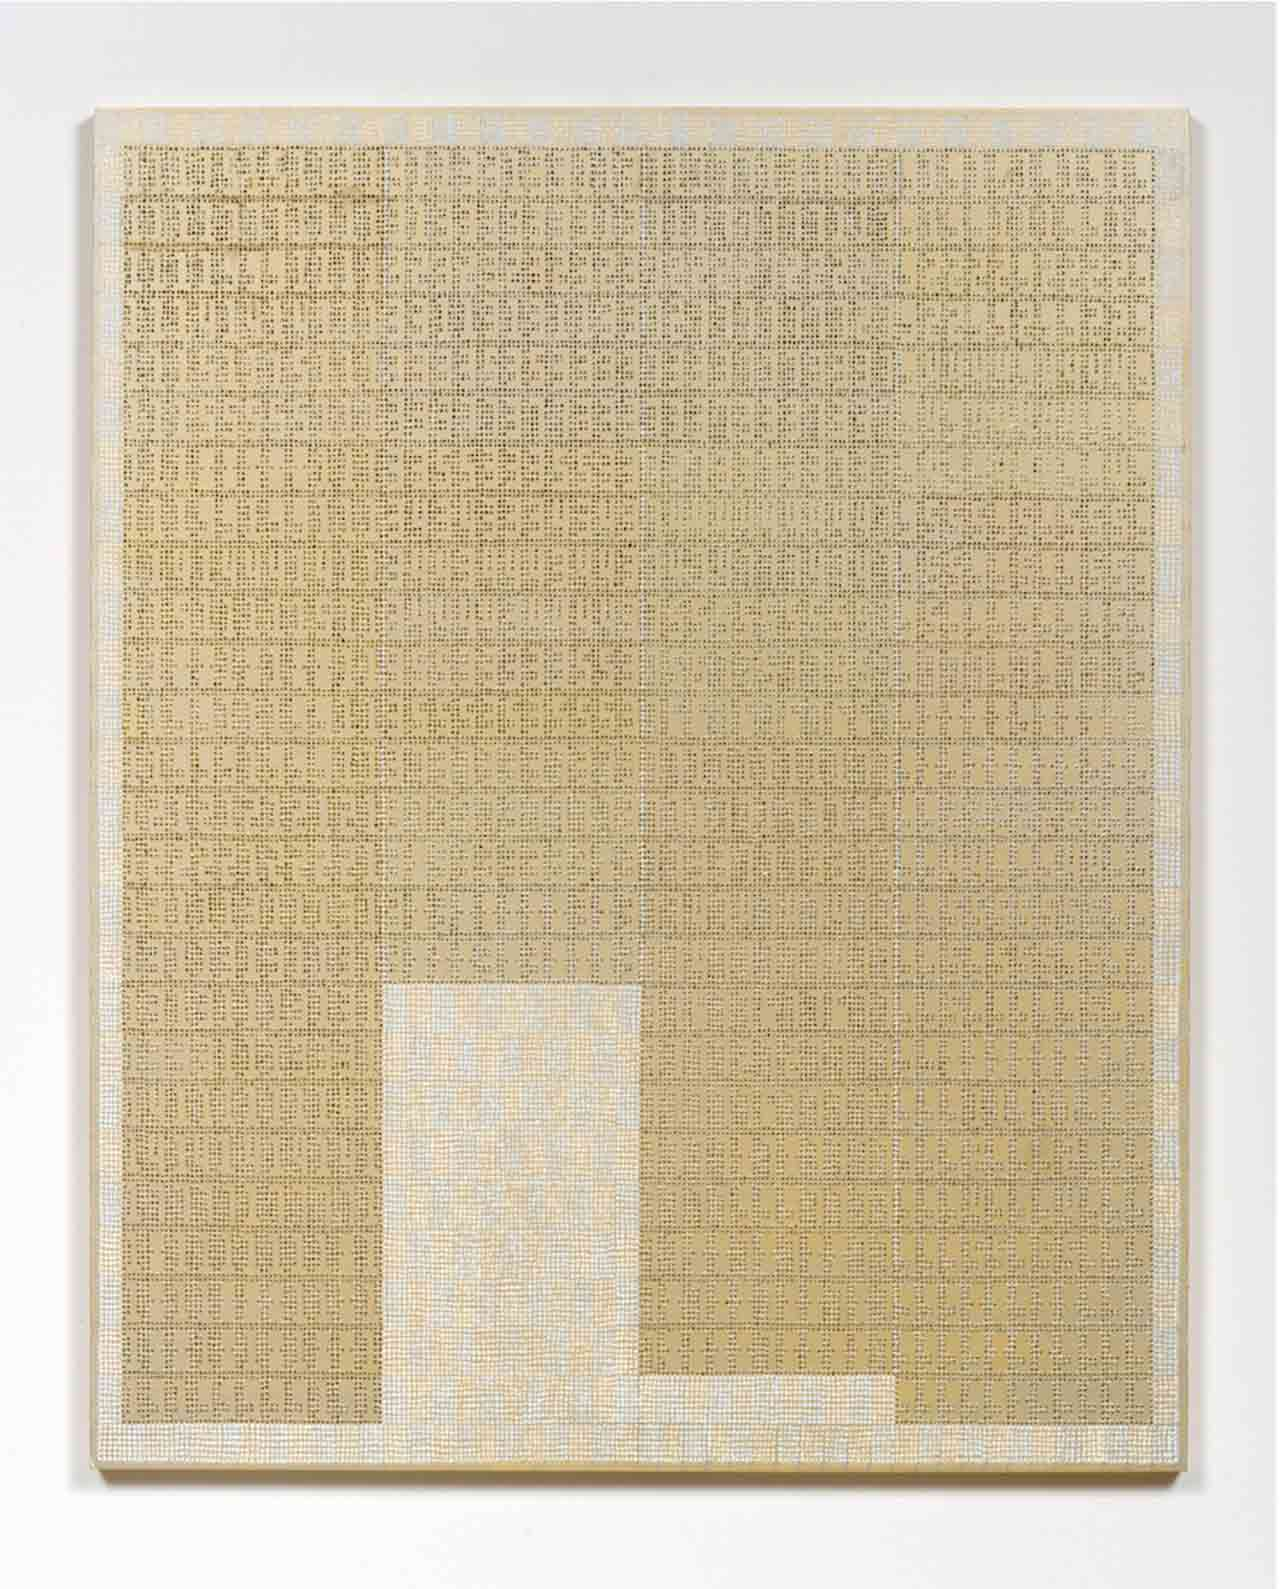 Gold Xylor Jane painting, covered with numbers painted with tiny silver dots forming numbers in their negative space.